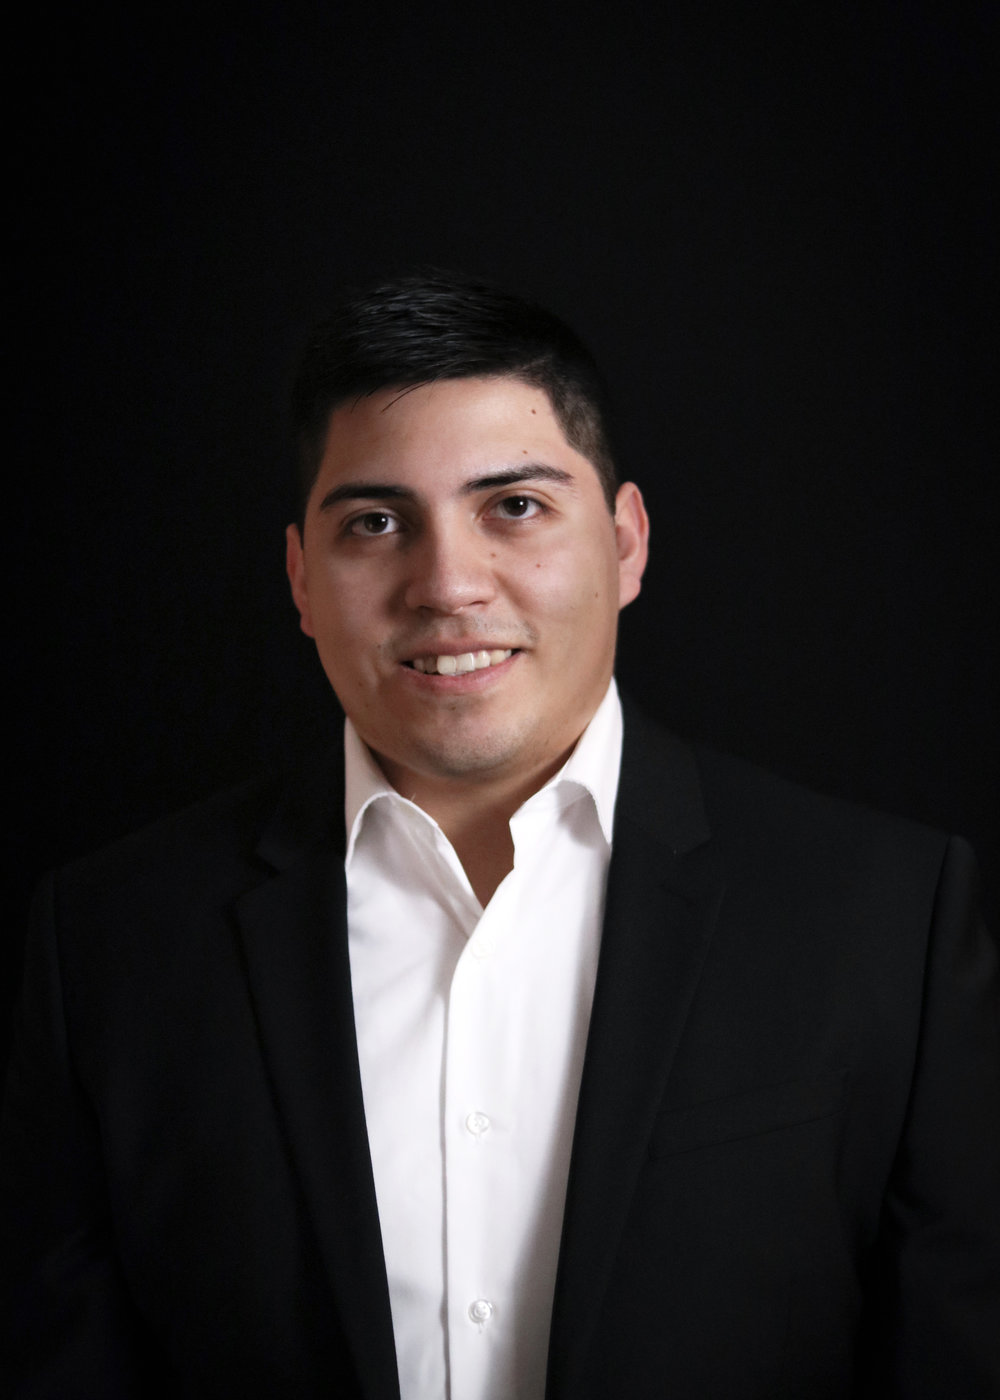 Isaias Sanchez - Bilingual Event Assistant